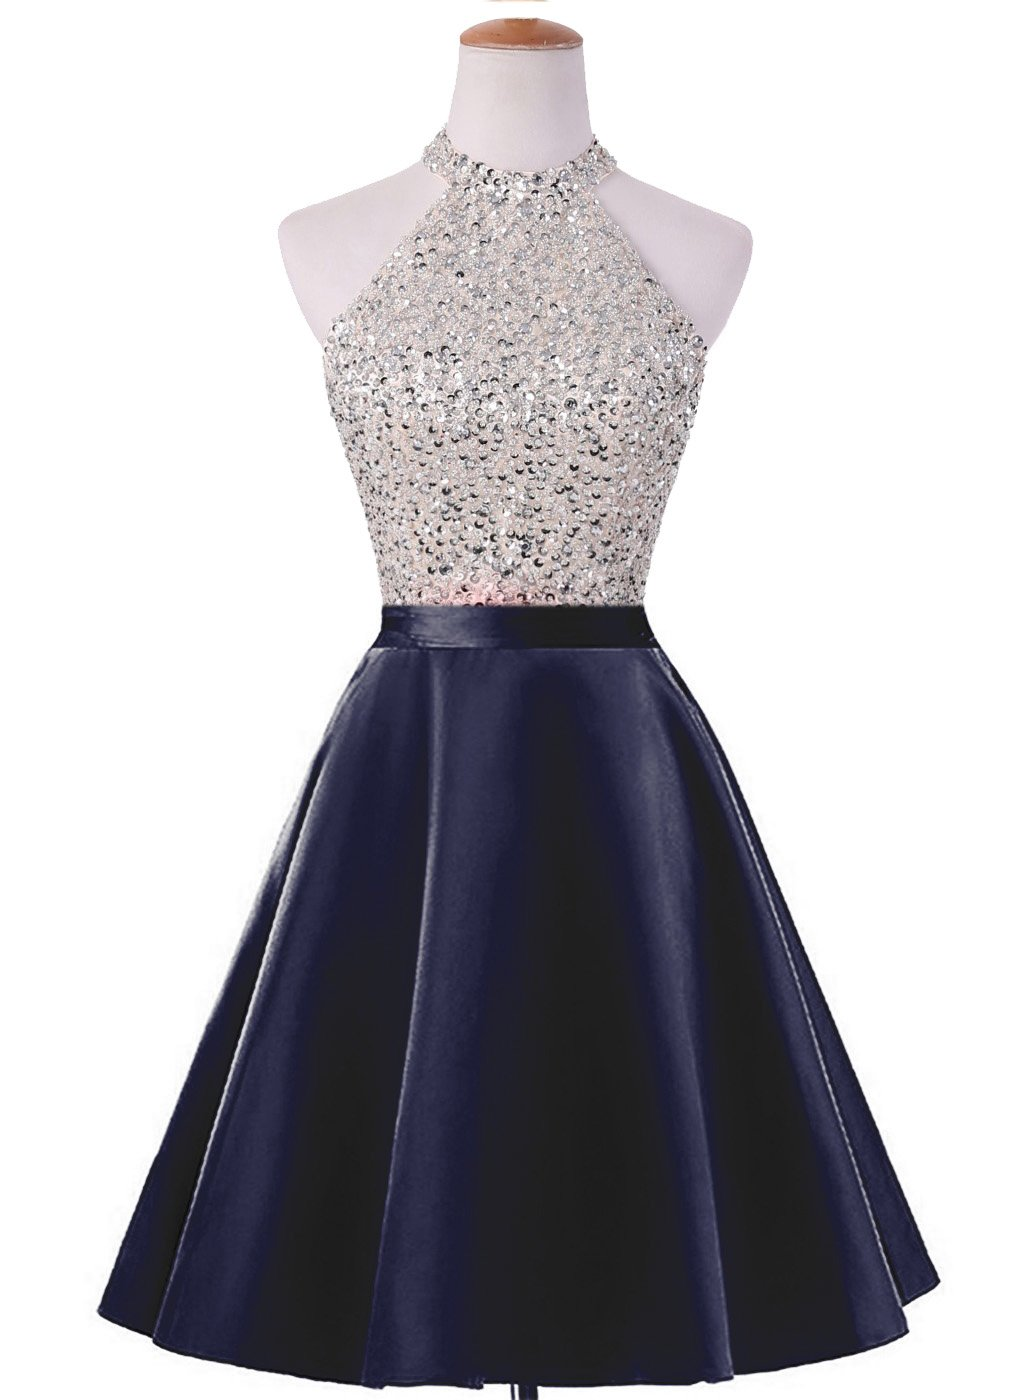 HEIMO Women's Sequined Keyhole Back Homecoming Dresses Beaded Prom Gowns Short H198 16 Navy